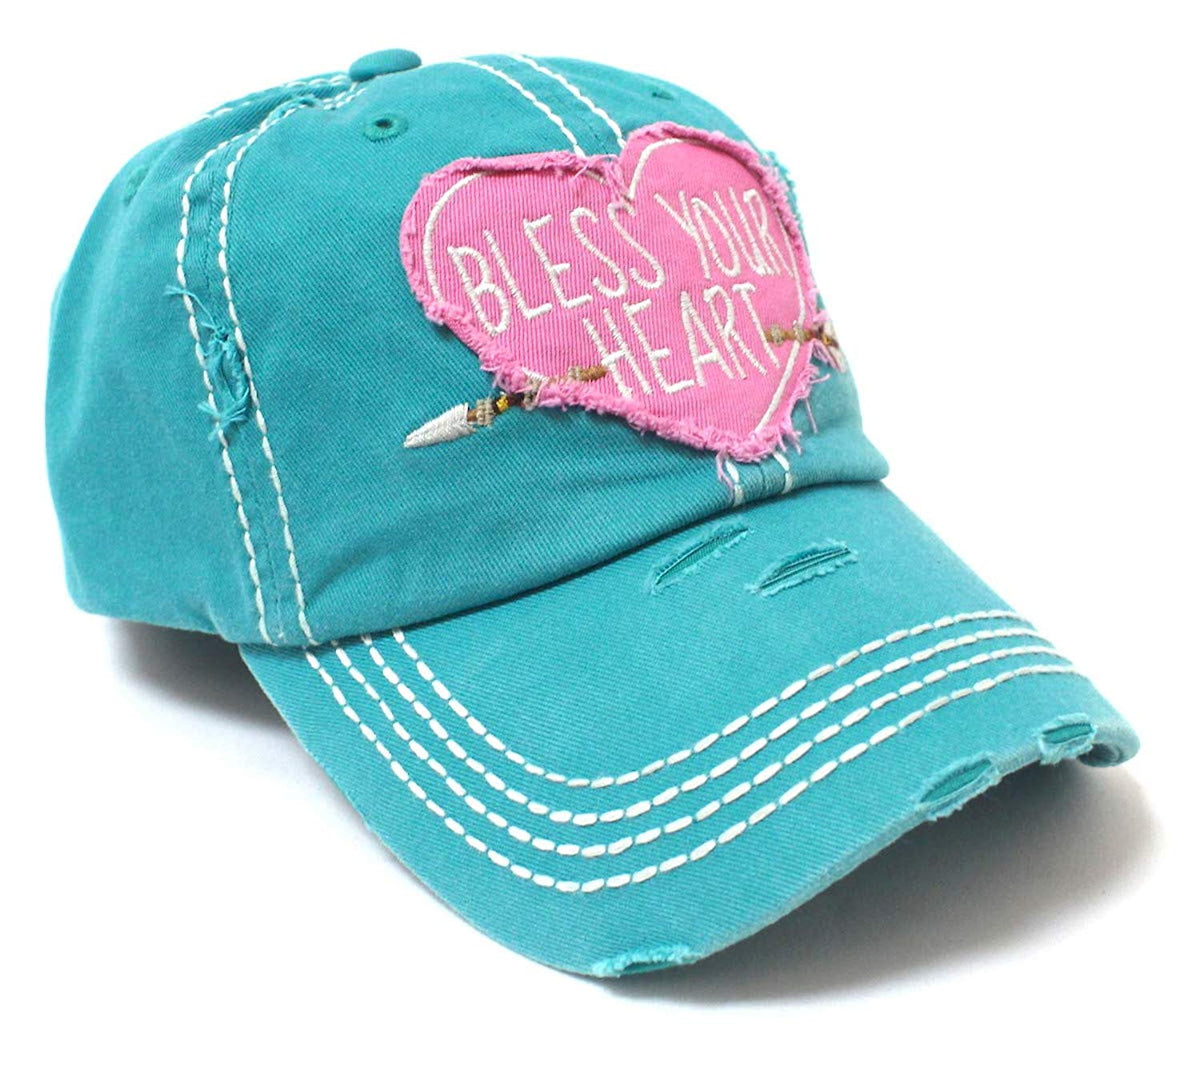 New!! Turquoise Heart & Arrow Bless Your Heart Vintage Hat - Caps 'N Vintage